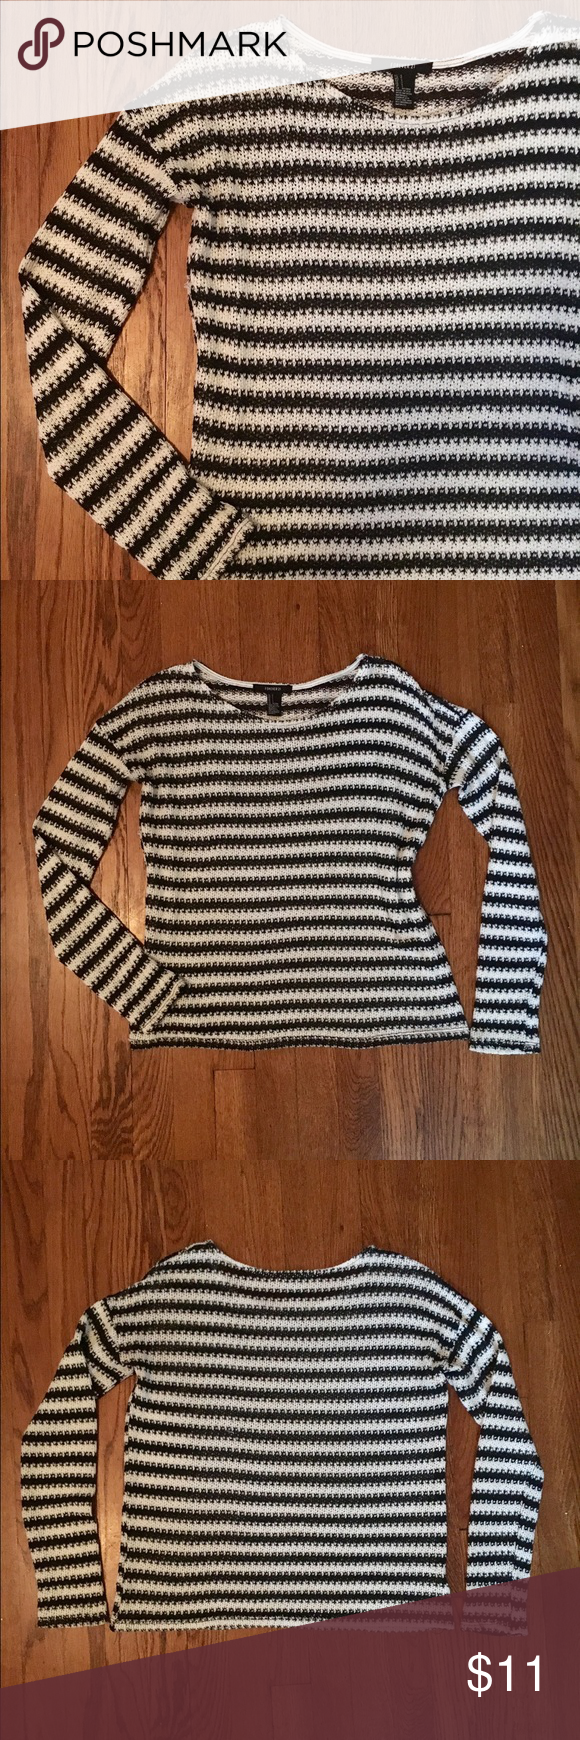 black & white striped knit black & white striped knit sweater from forever 21, size small • perfect all season neutral that you can pair with any color & almost any bottoms - jeans, skirts, shorts + even over dresses! • it's so versatile that it can also be worn as a layering piece over a chambray button up, under an oversized plaid or vest, etc. • good pre-loved condition • semi-sheer - can wear with a nude bra or with a cami • bundle & save - - make an offer Forever 21 Sweaters